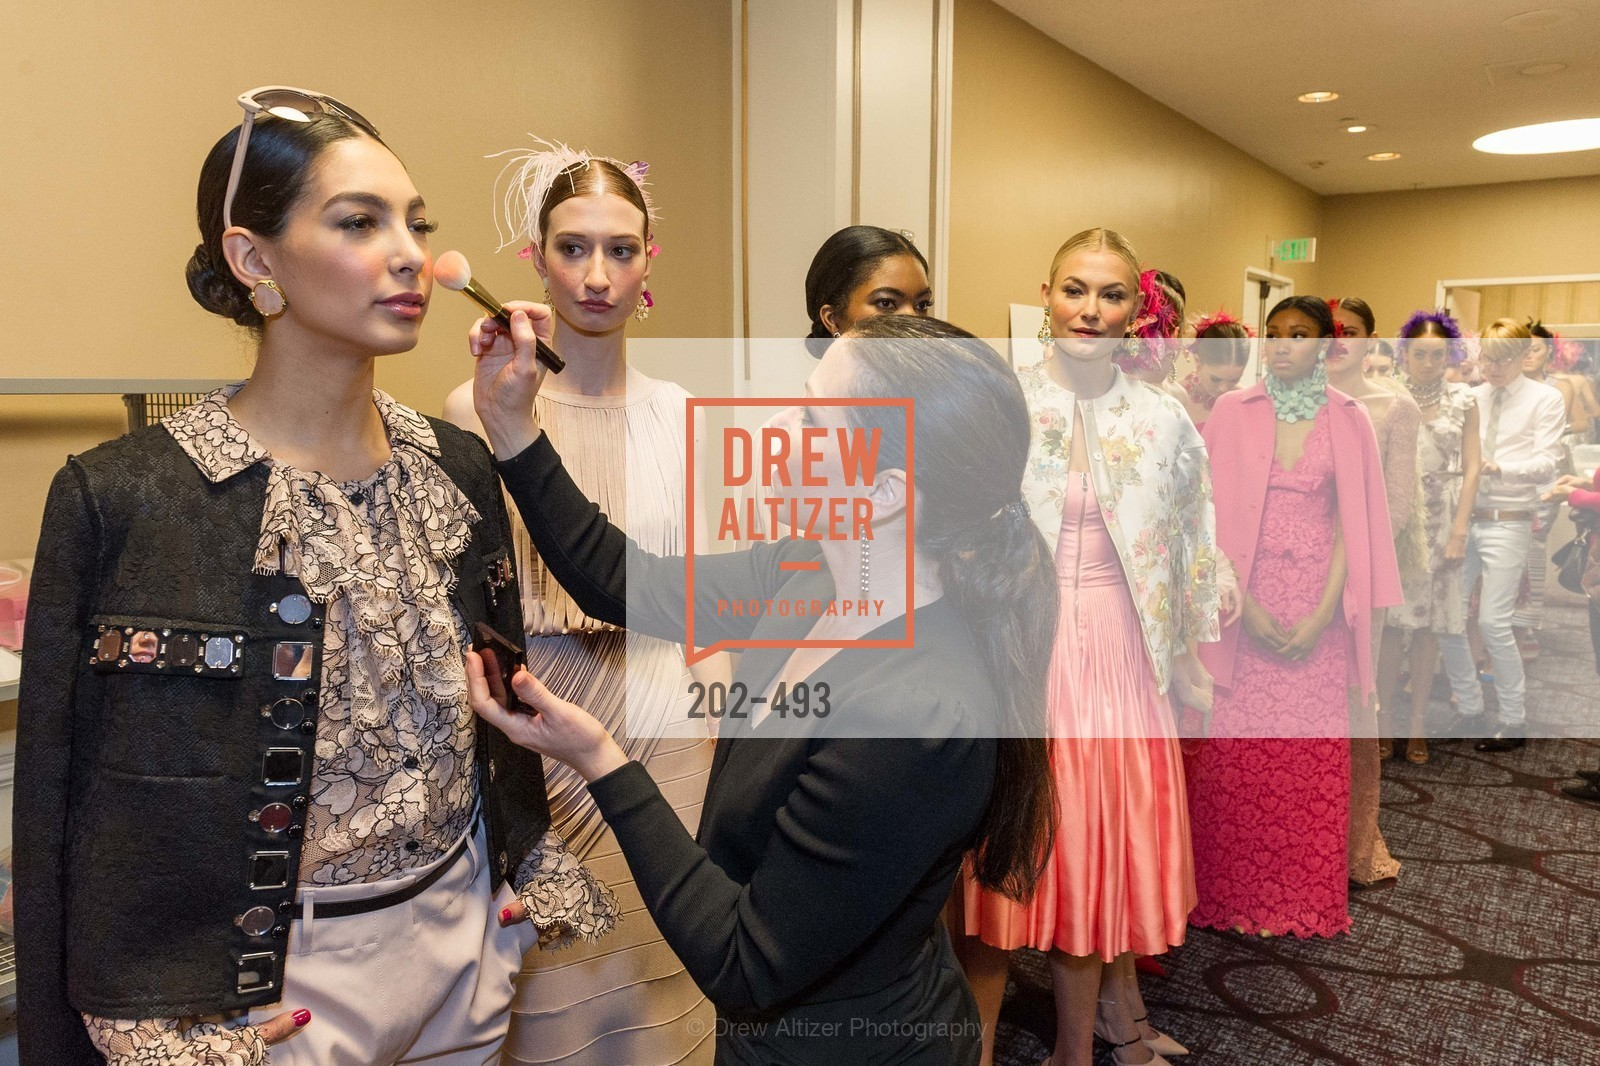 Back Stage, SAN FRANCISCO BALLET AUXULIARY 2014 Fashion Show, April 3rd, 2014, Photo,Drew Altizer, Drew Altizer Photography, full-service agency, private events, San Francisco photographer, photographer california